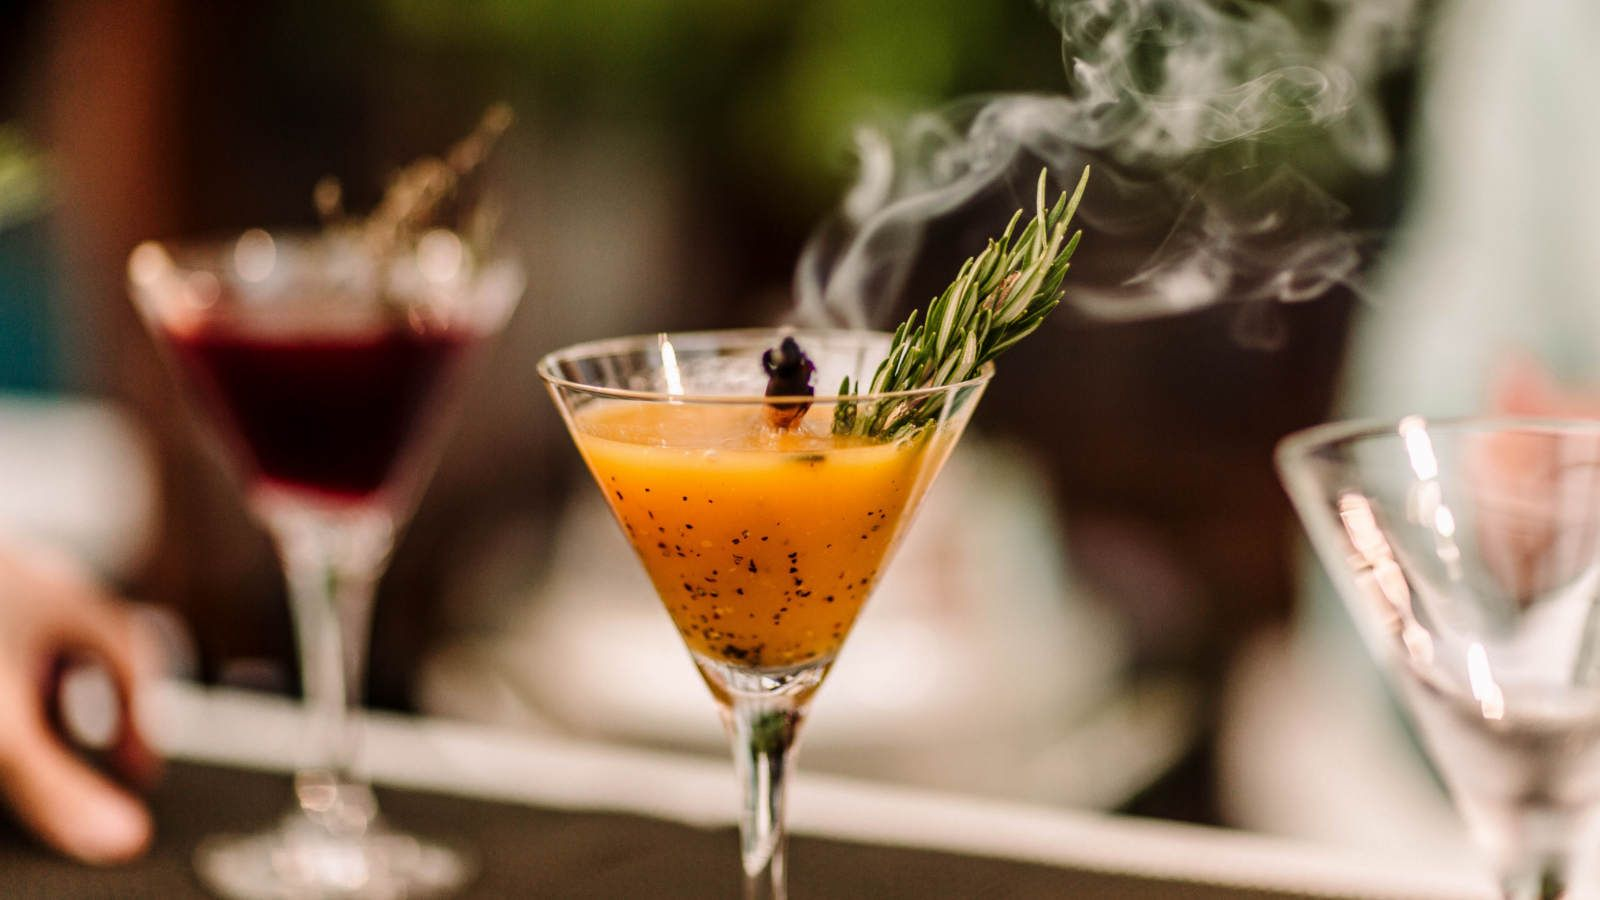 Discover the world of cocktails with the W Instanbul mixologist Serdar Pelistar